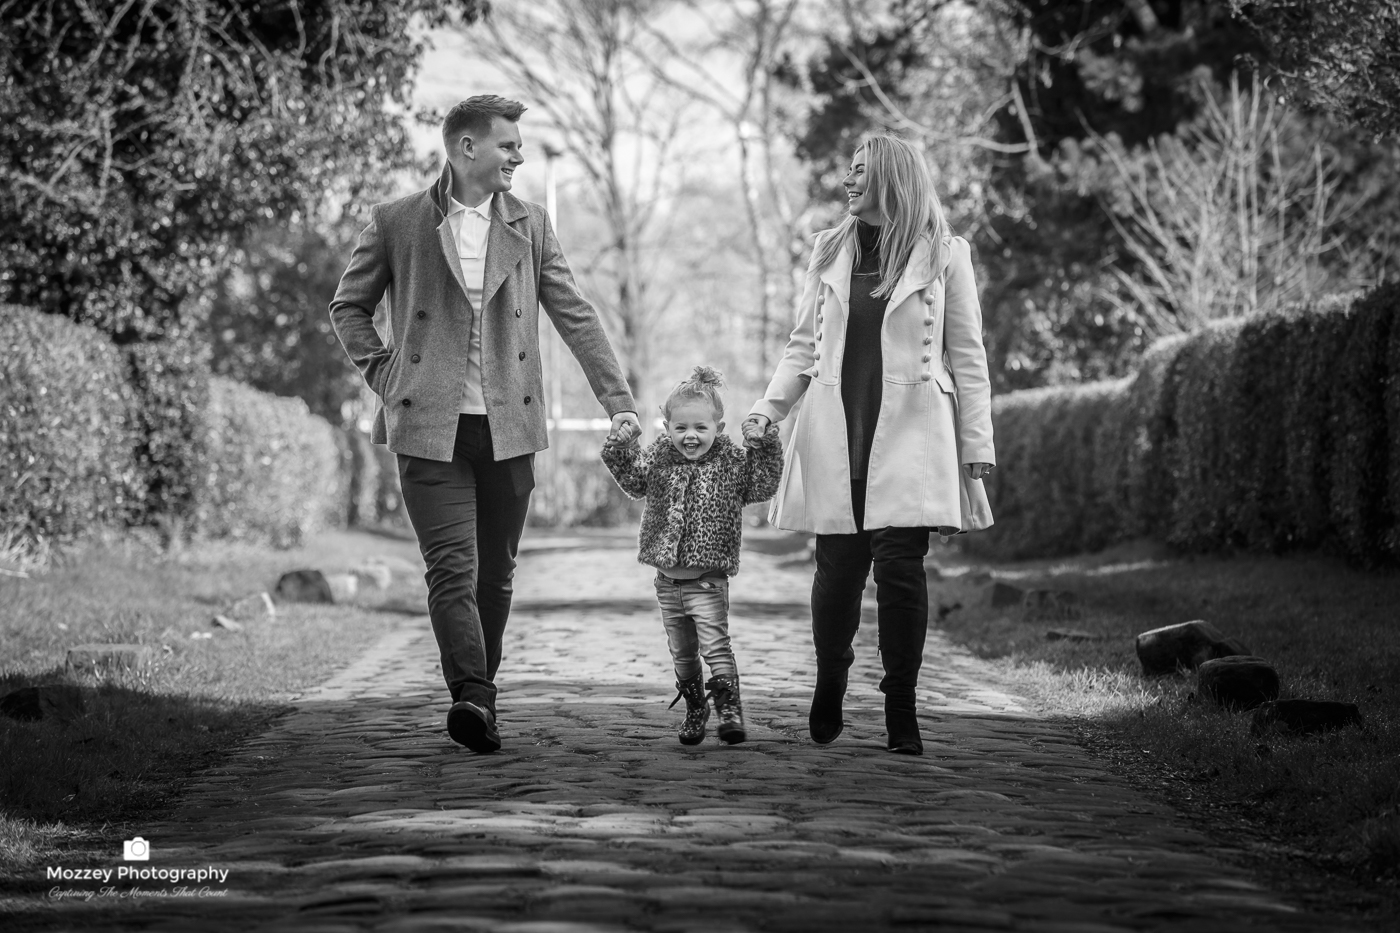 Outdoor Portrait Session. - FROM £80